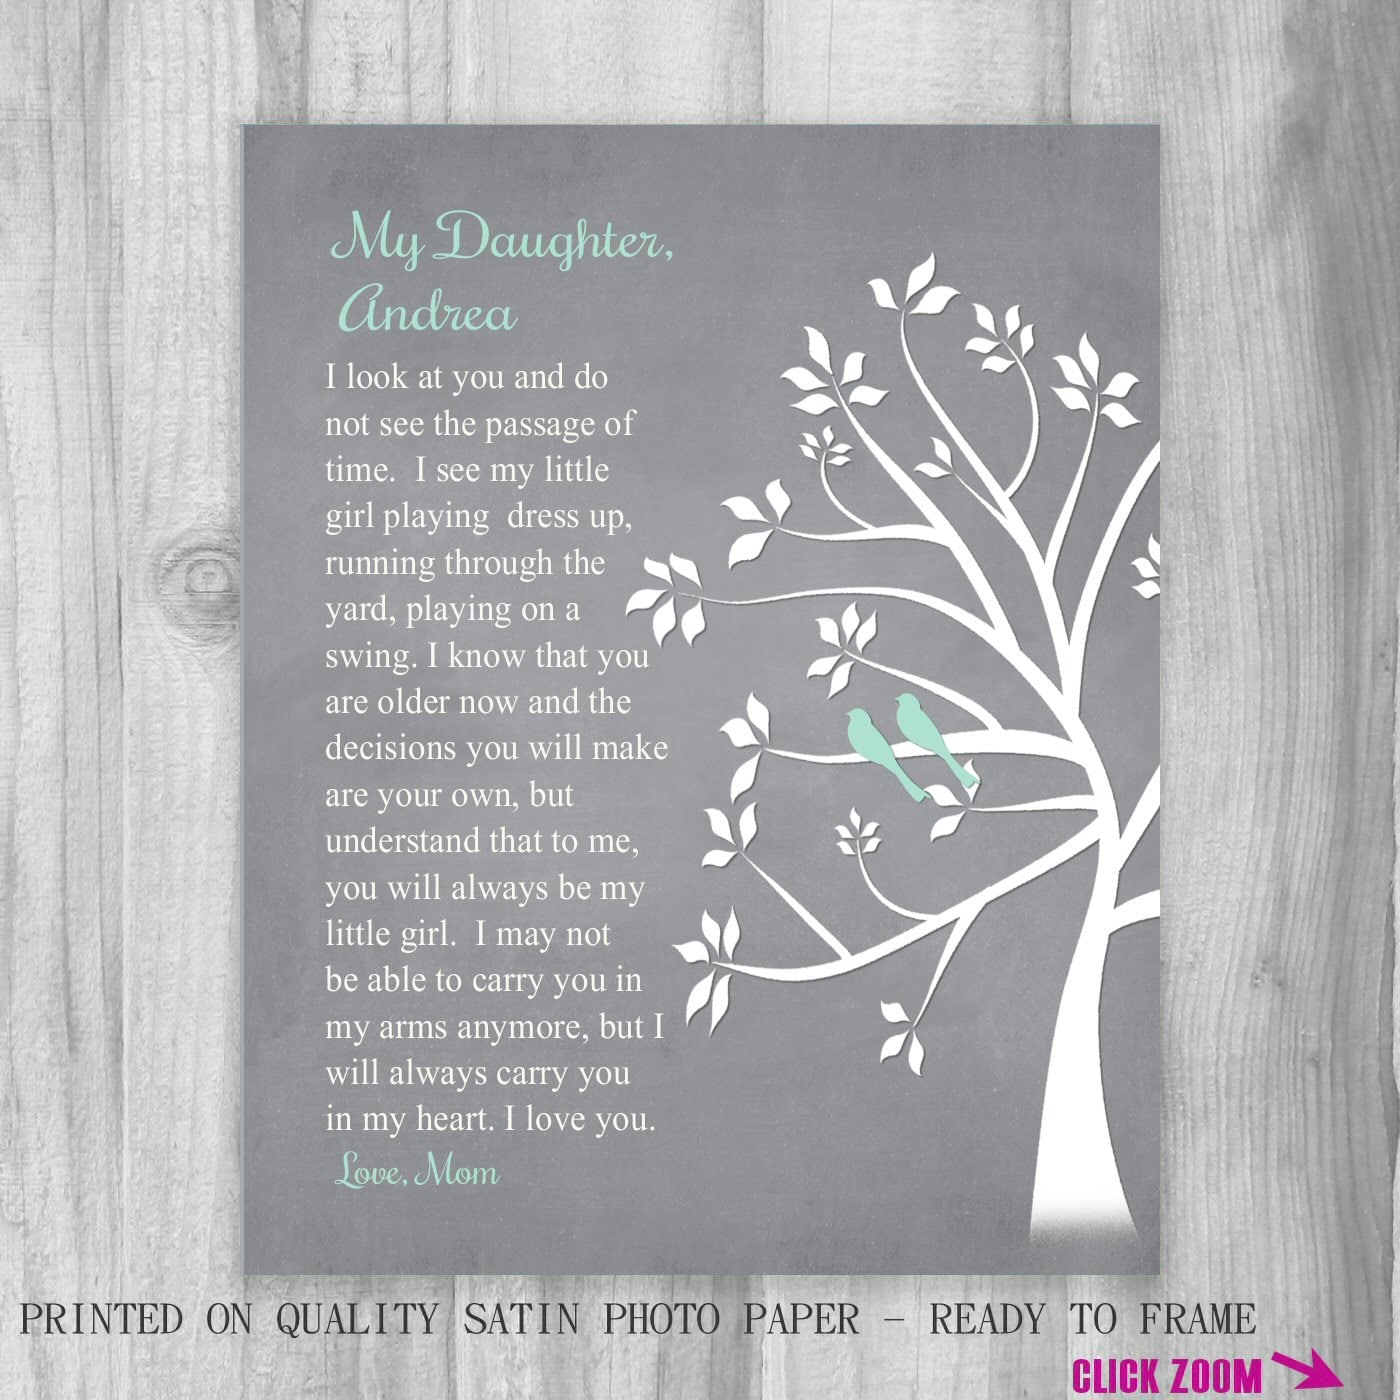 Wedding Gift For Bride From Mother: Wedding Day Gift From Mother To Daughter Wedding Gift From